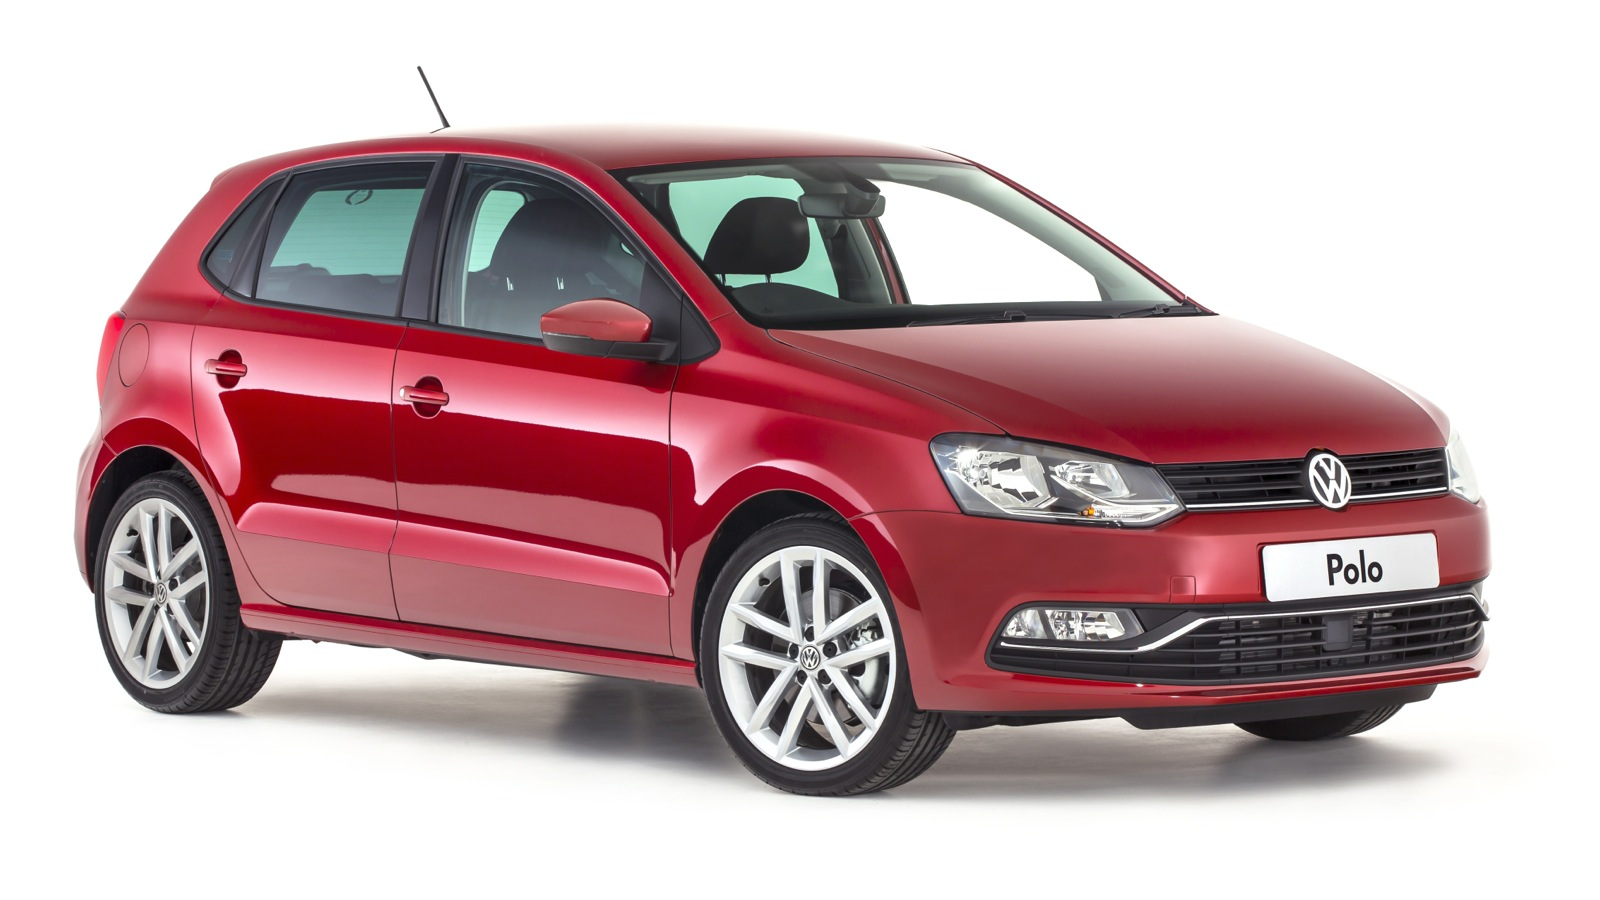 2015 volkswagen polo pricing and specifications. Black Bedroom Furniture Sets. Home Design Ideas